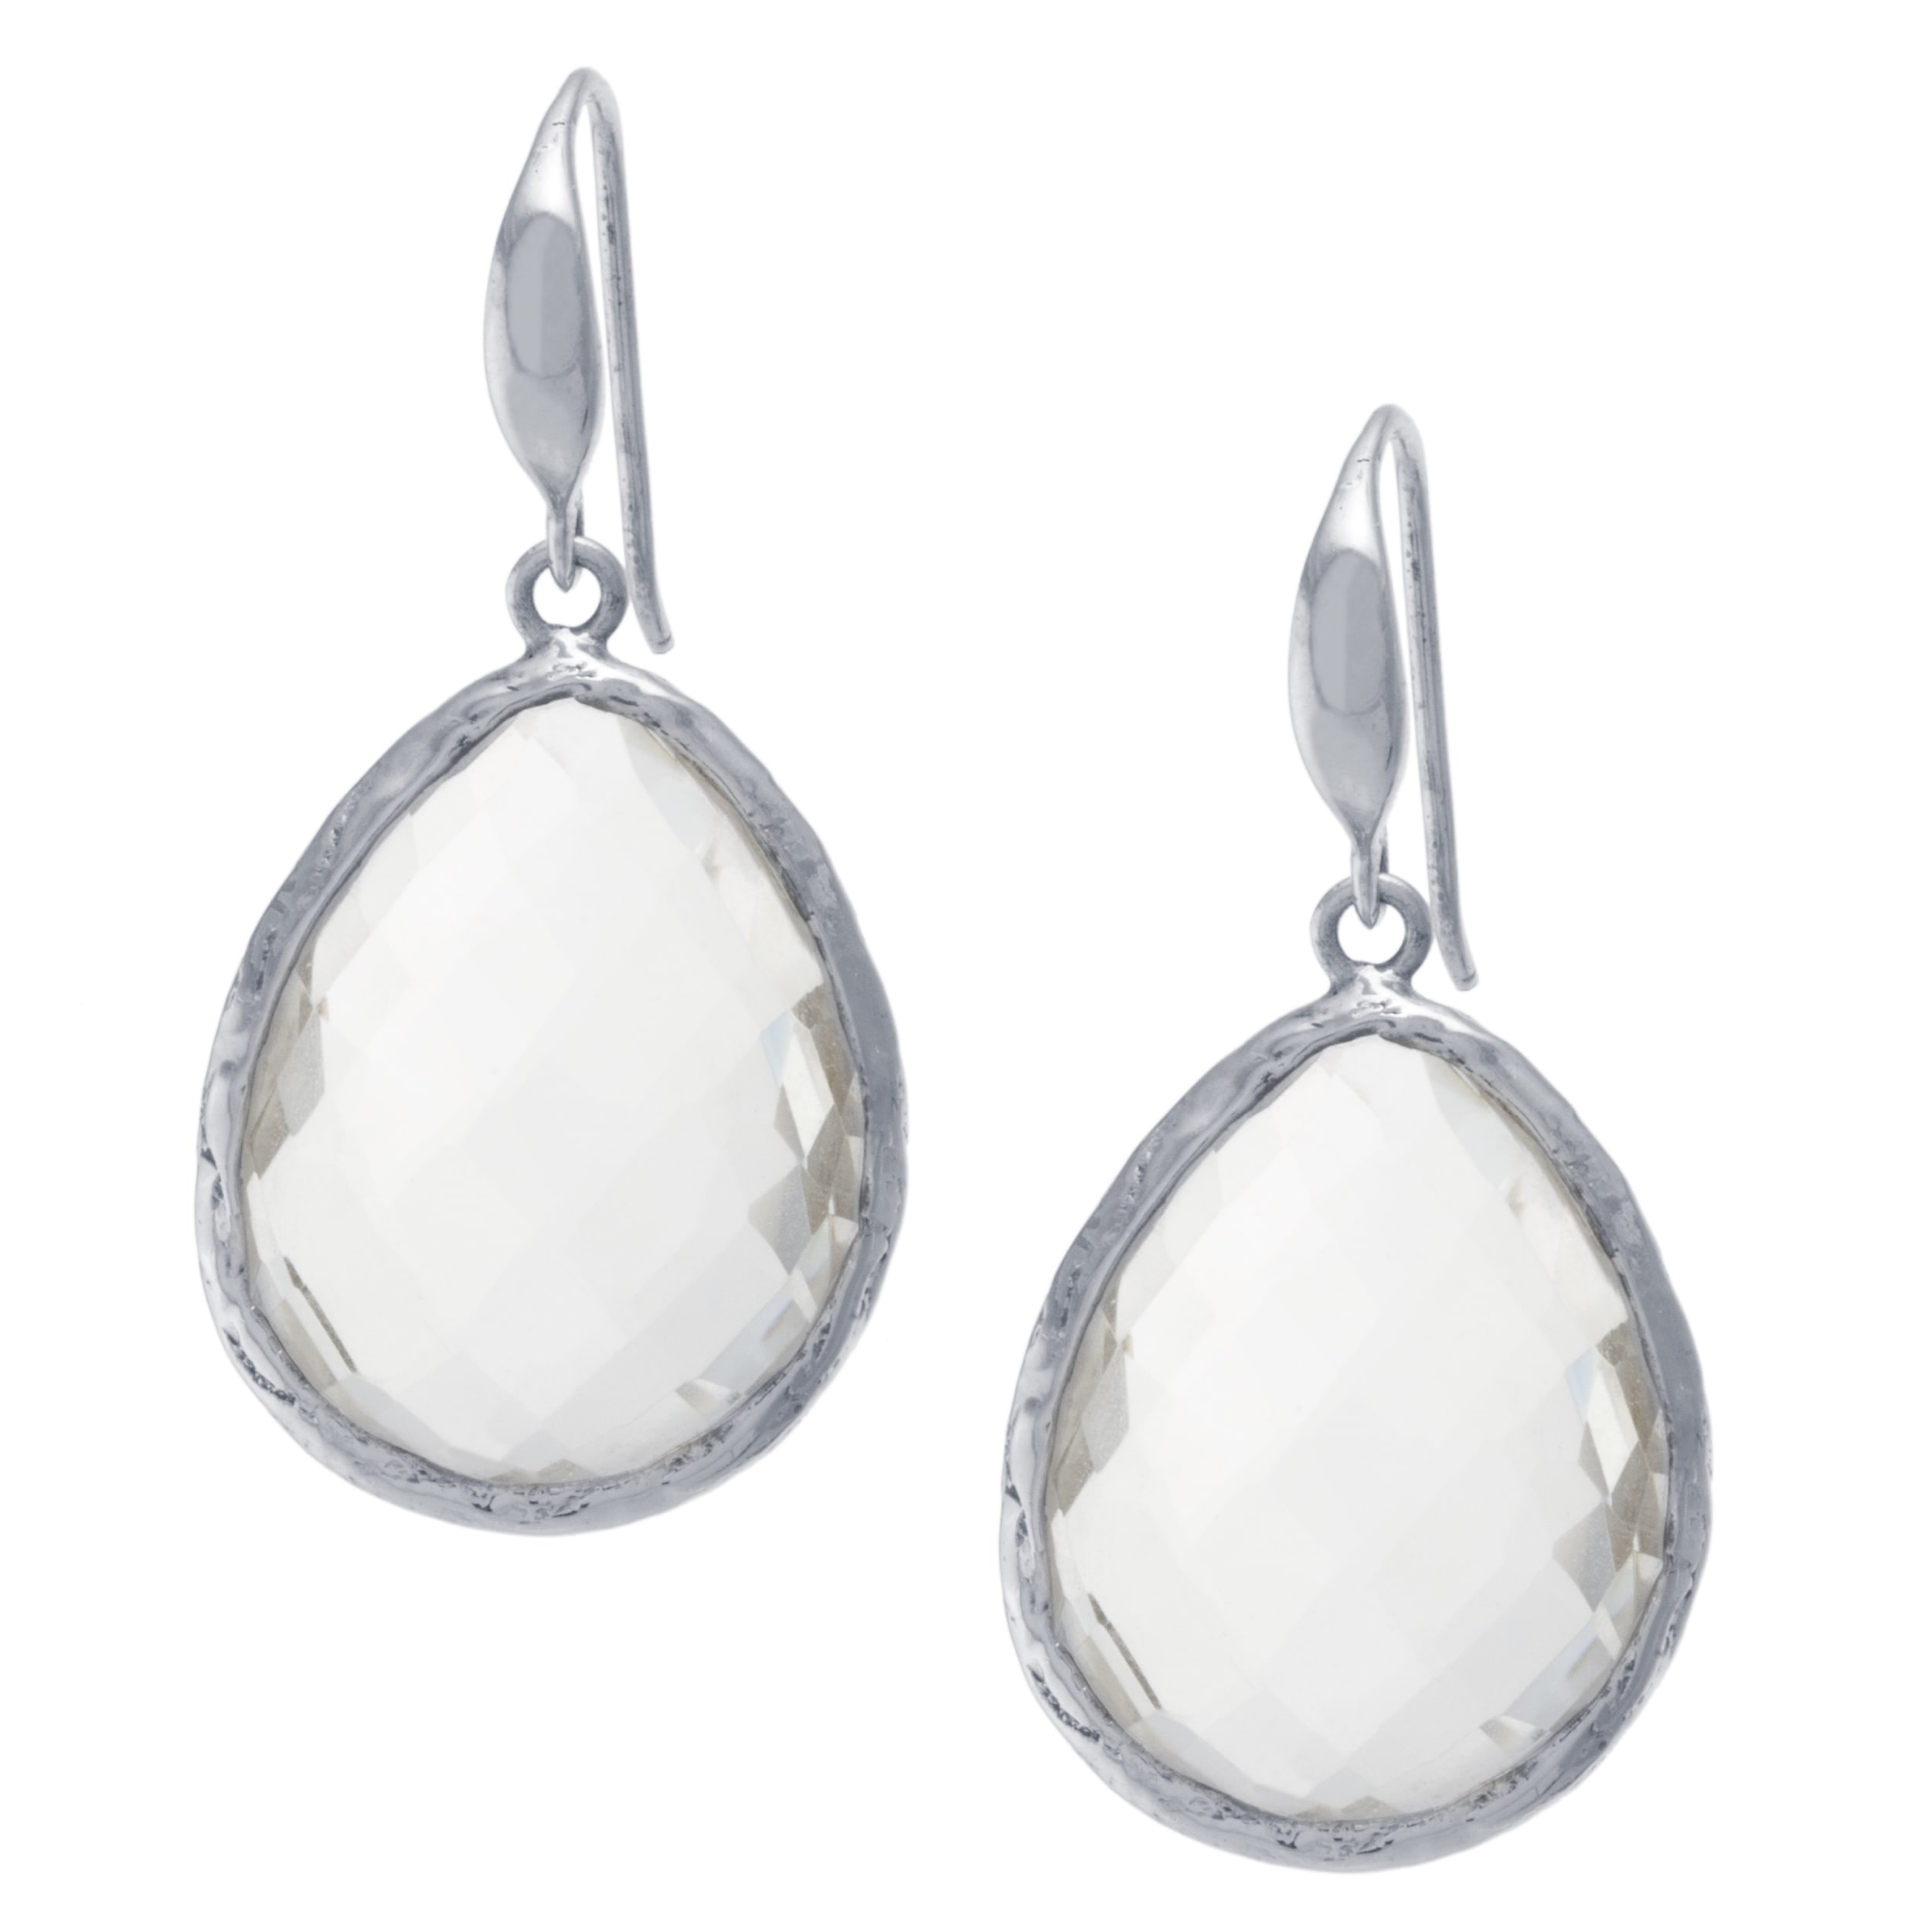 Athra Luxe Collection Sterling Silver Rock Crystal Quartz...